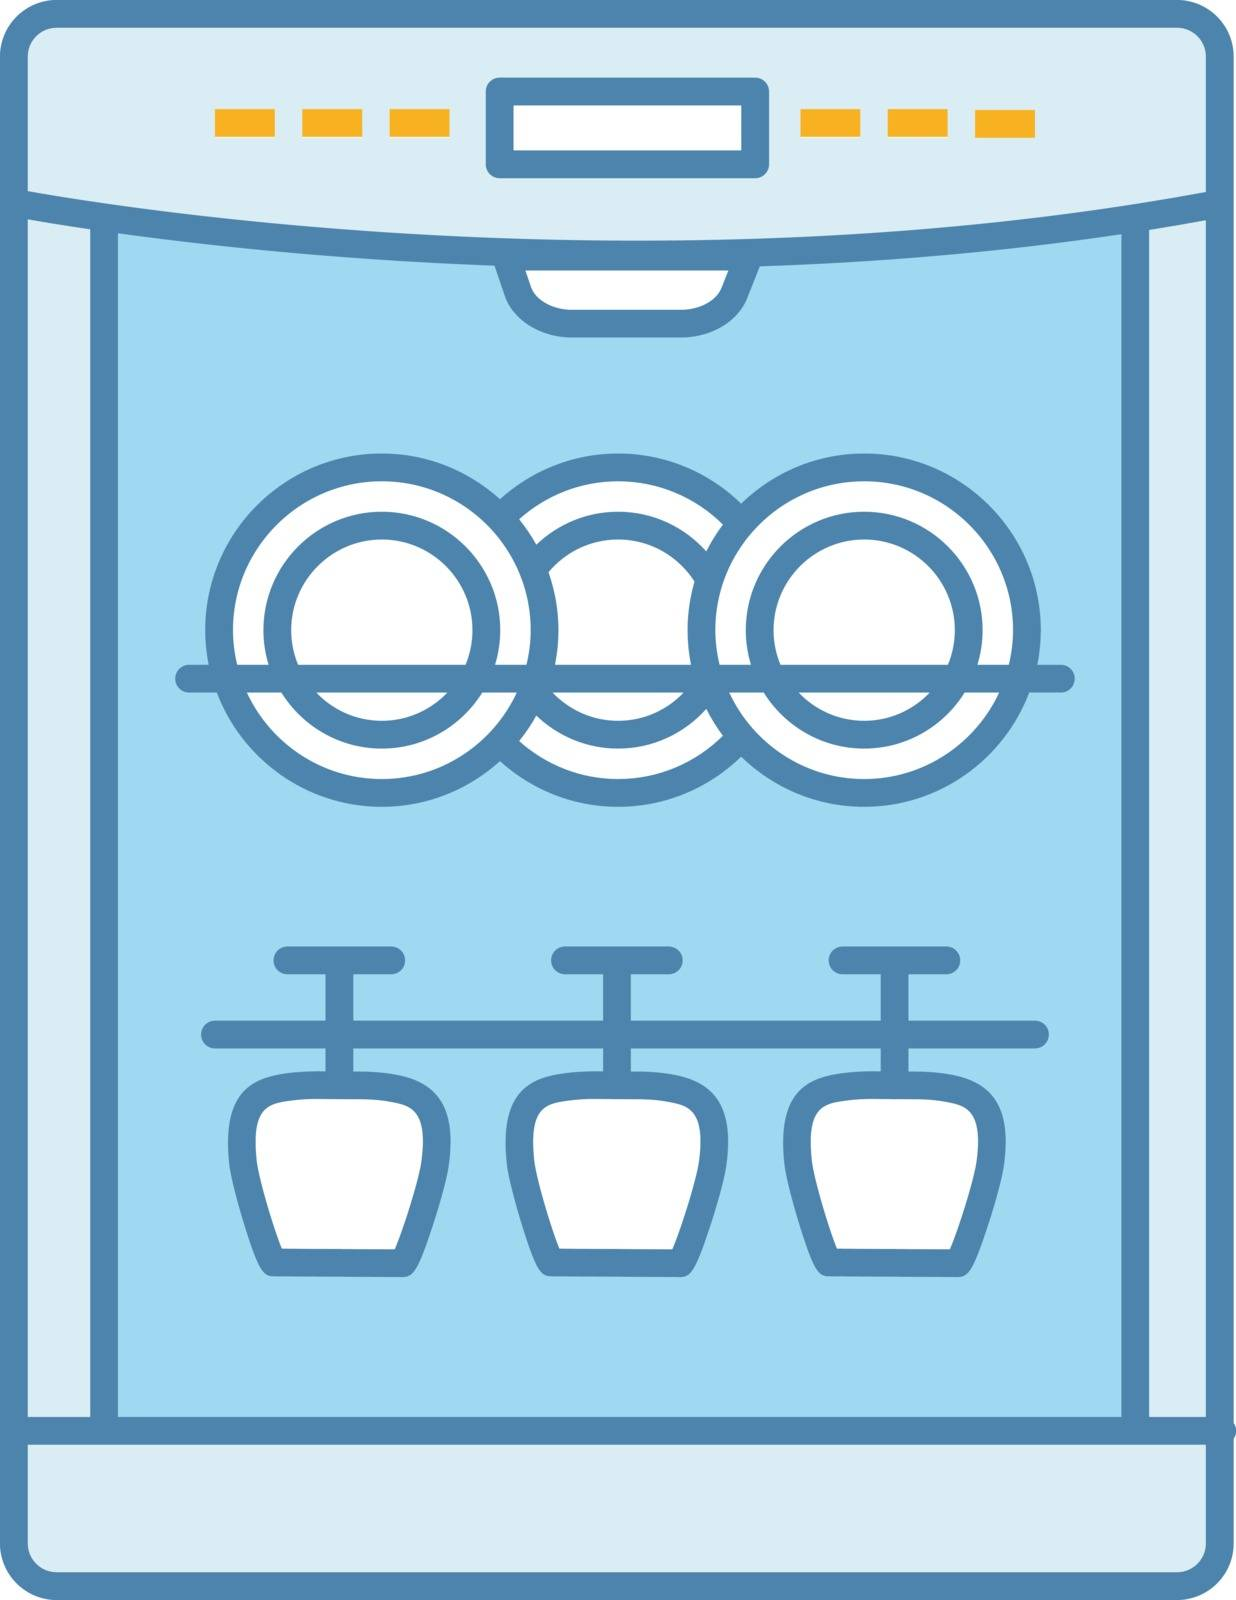 Dishwasher color icon. Automatic dishware and cutlery cleaning. Kitchen appliance. Restaurant, cafe equipment. Isolated vector illustration